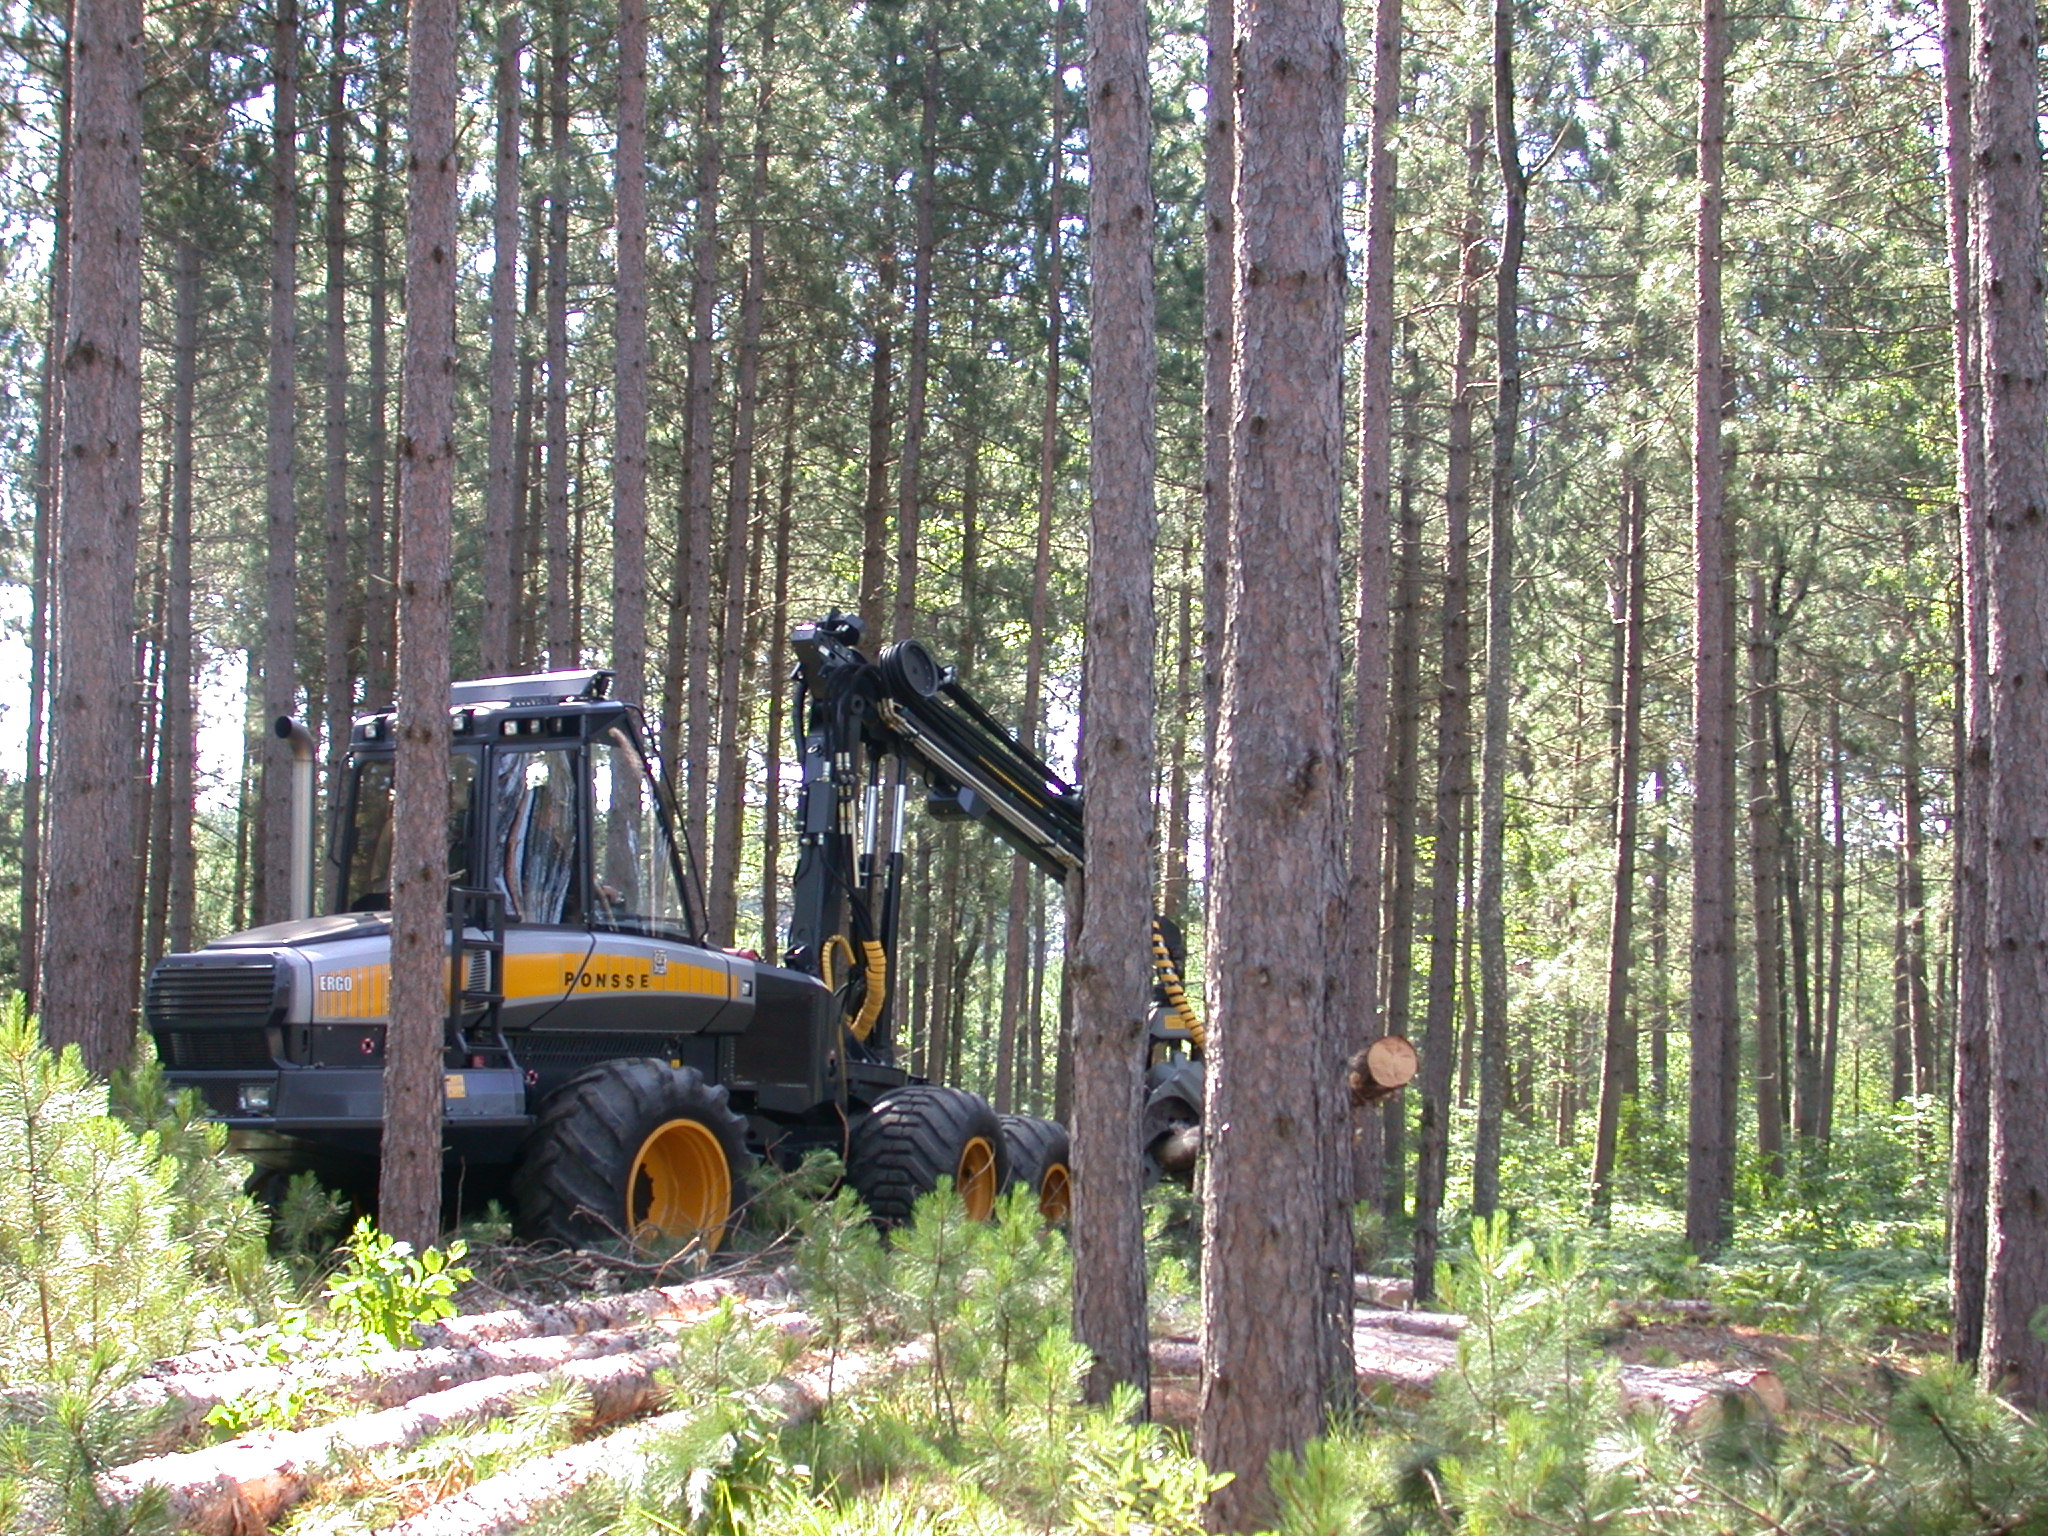 A picture of a logging machine working in a forested area.